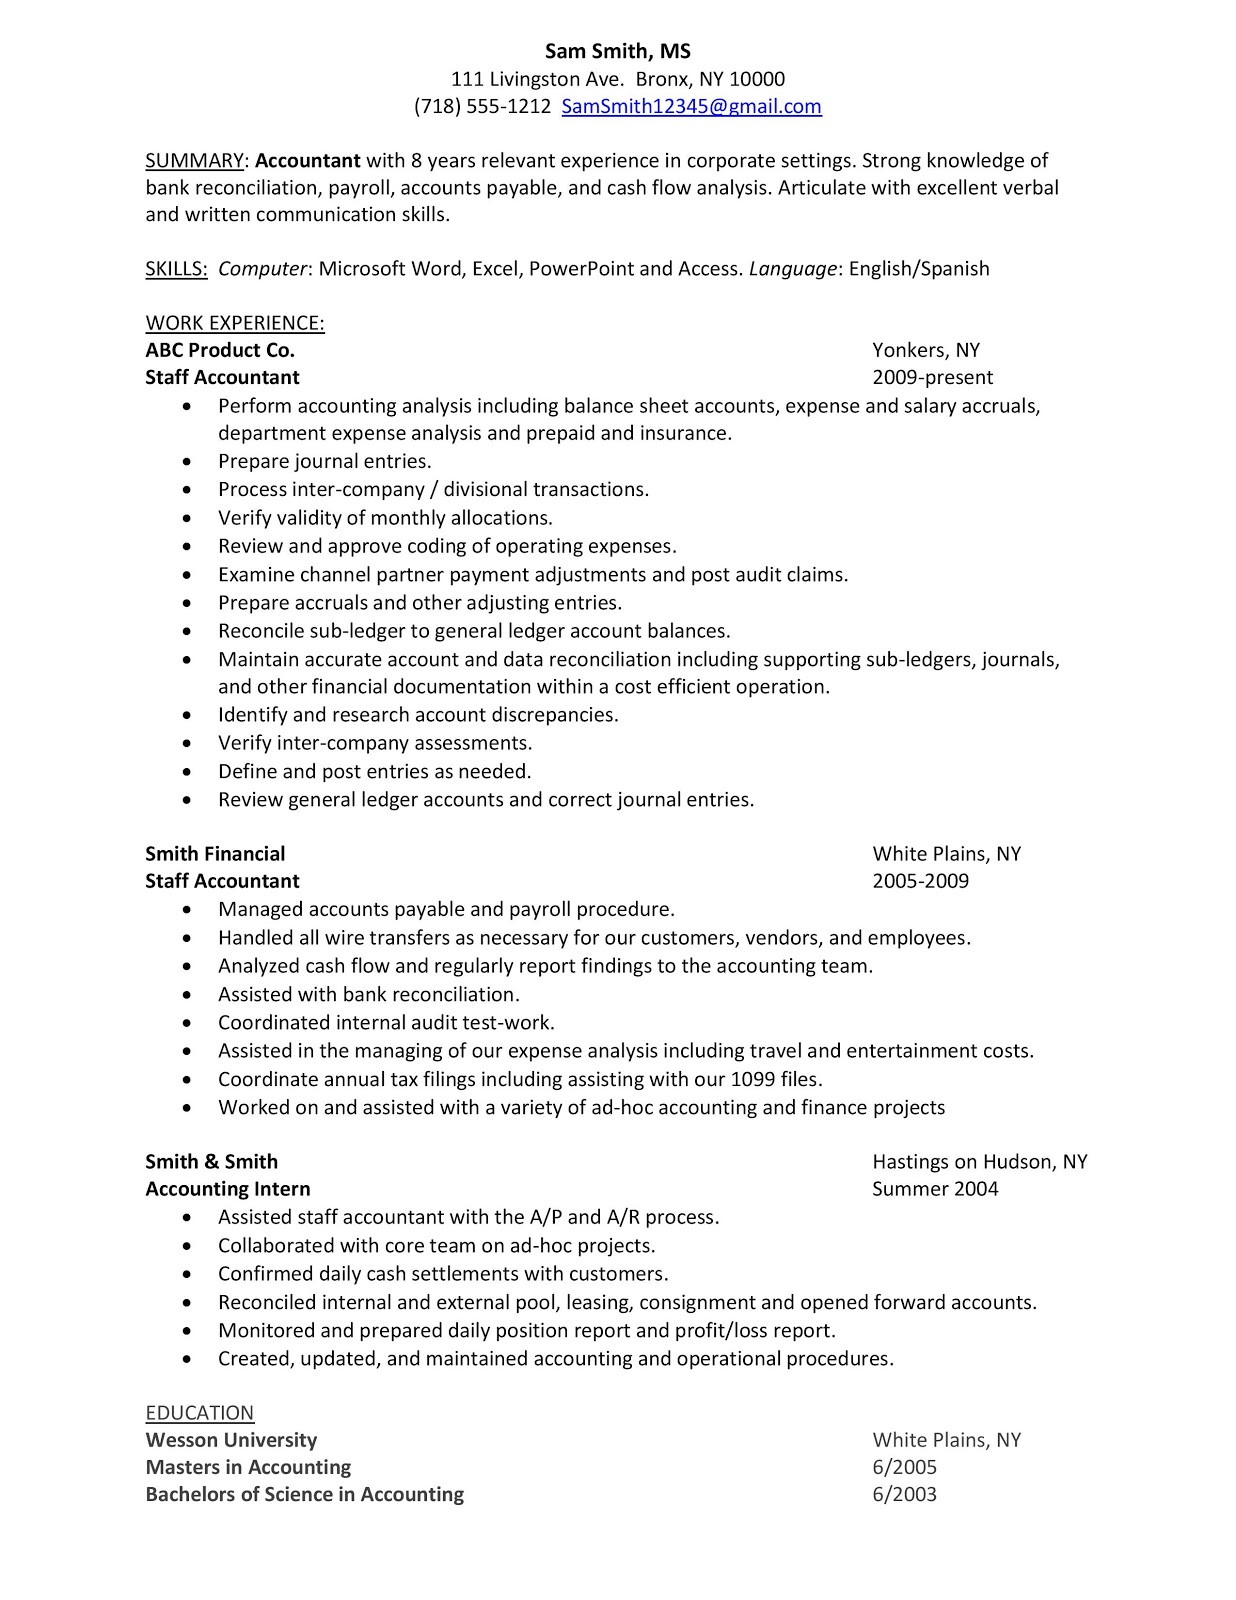 Sample Resume Staff Accountant Career Advice Pro Wrestling Business